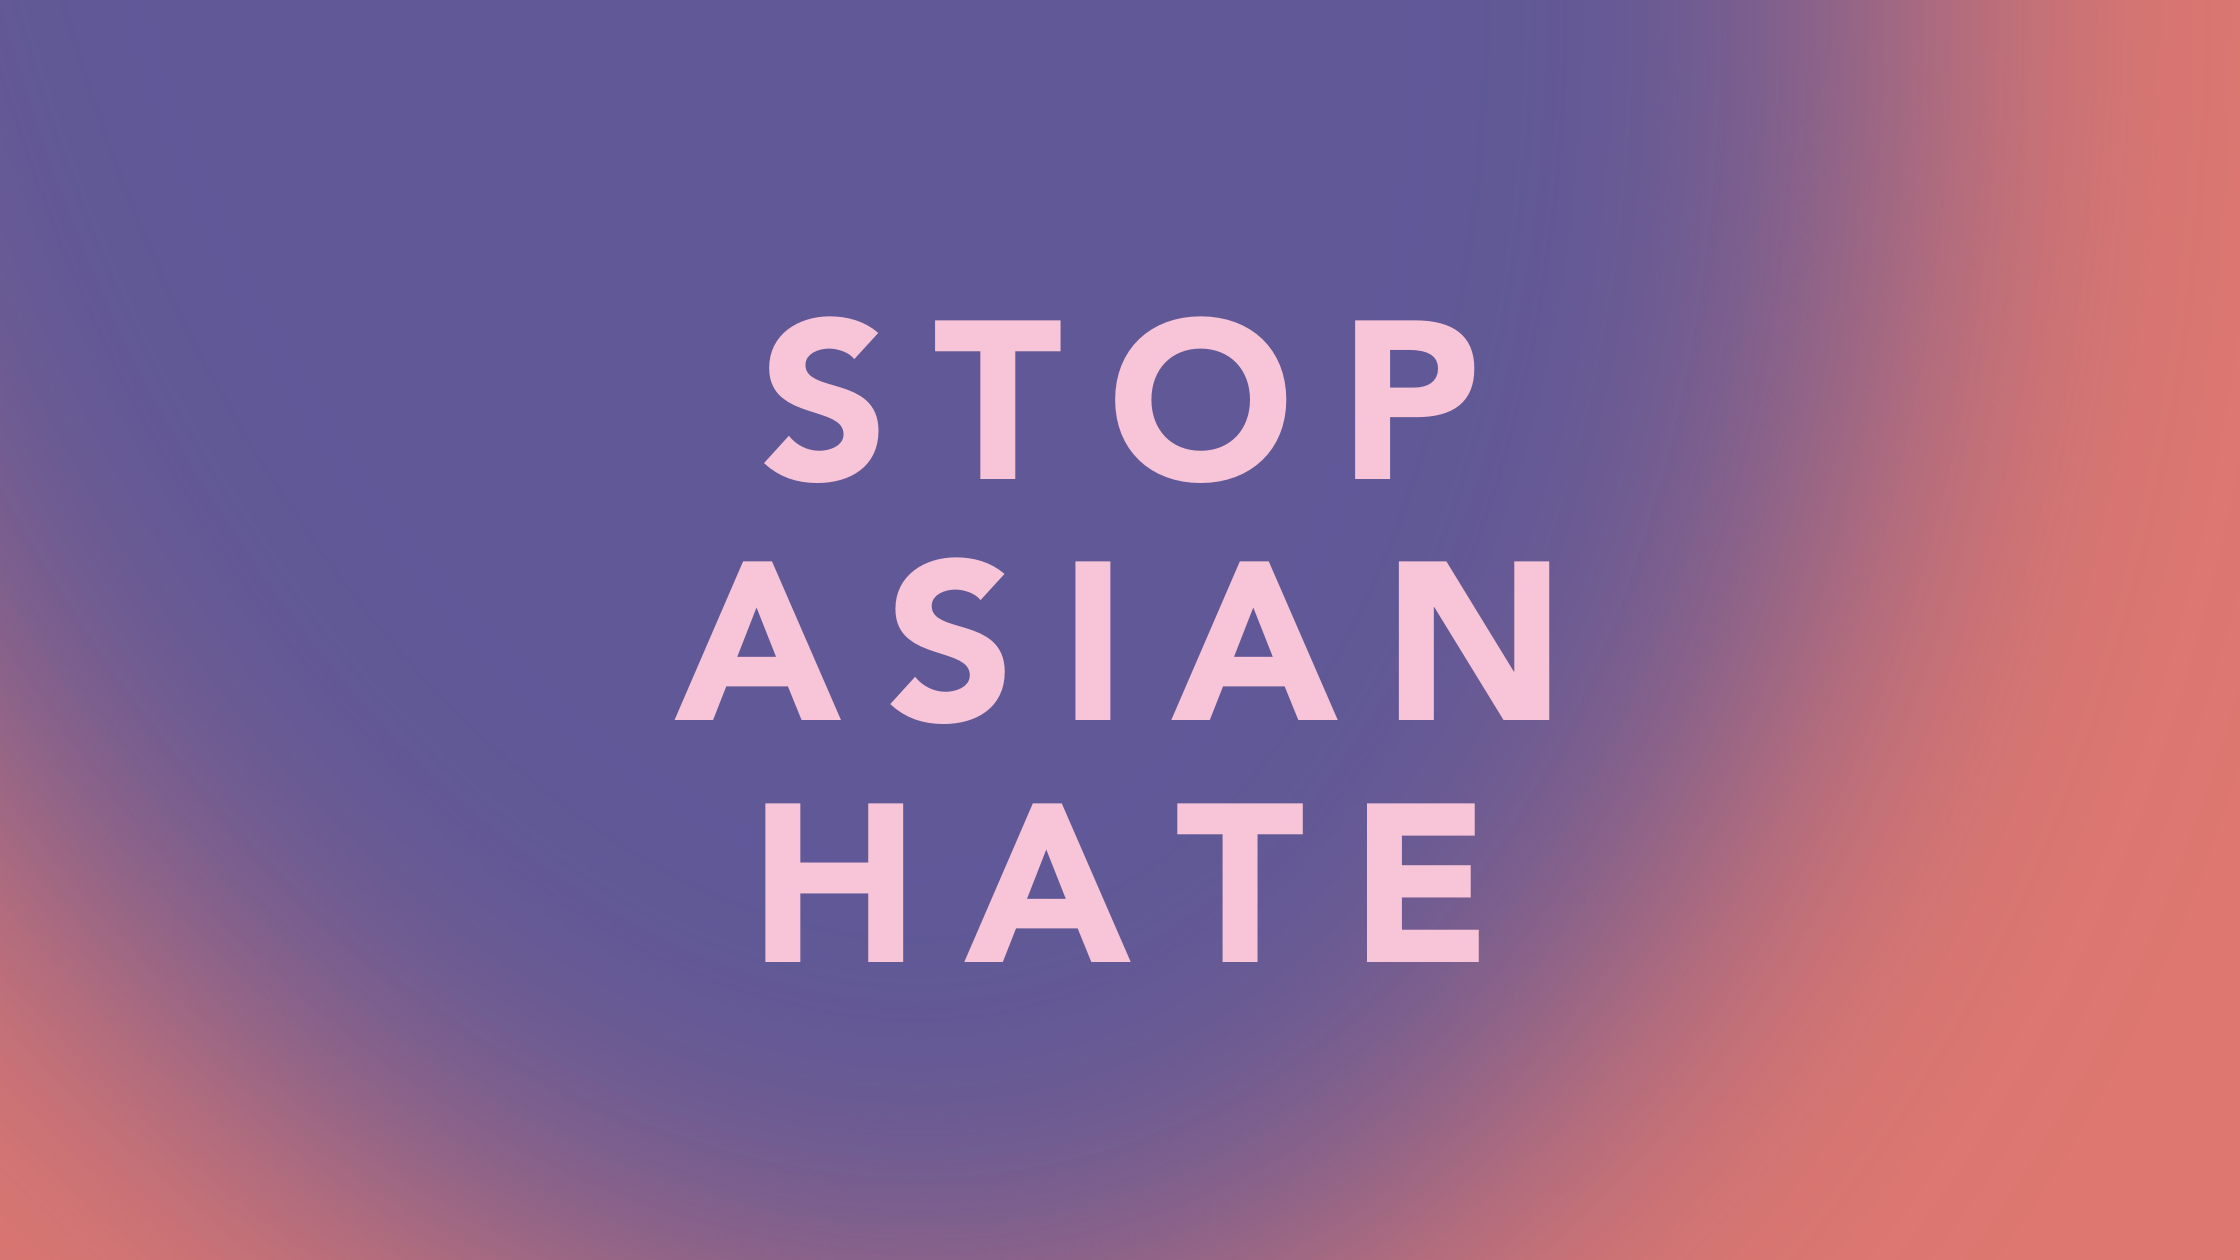 Copy of Stop Asian Hate.png